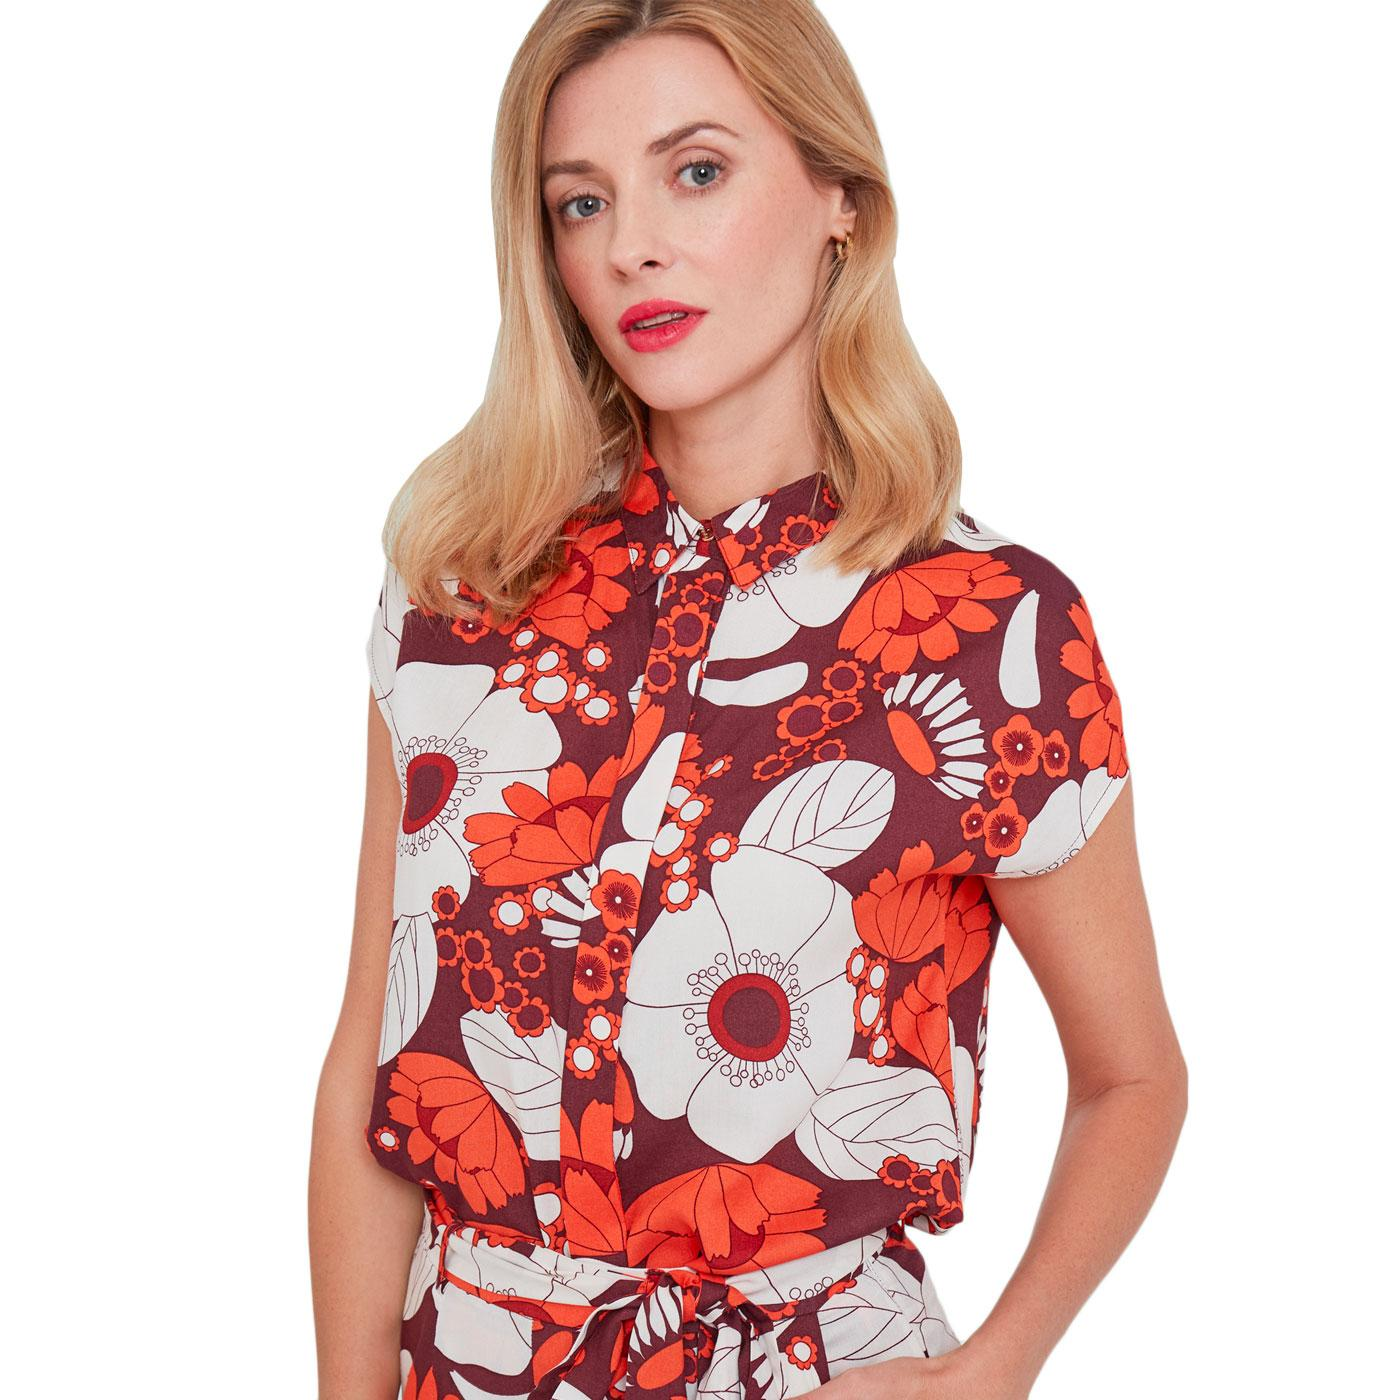 And Now? MADEMOISELLE YEYE Retro 60s Floral Top